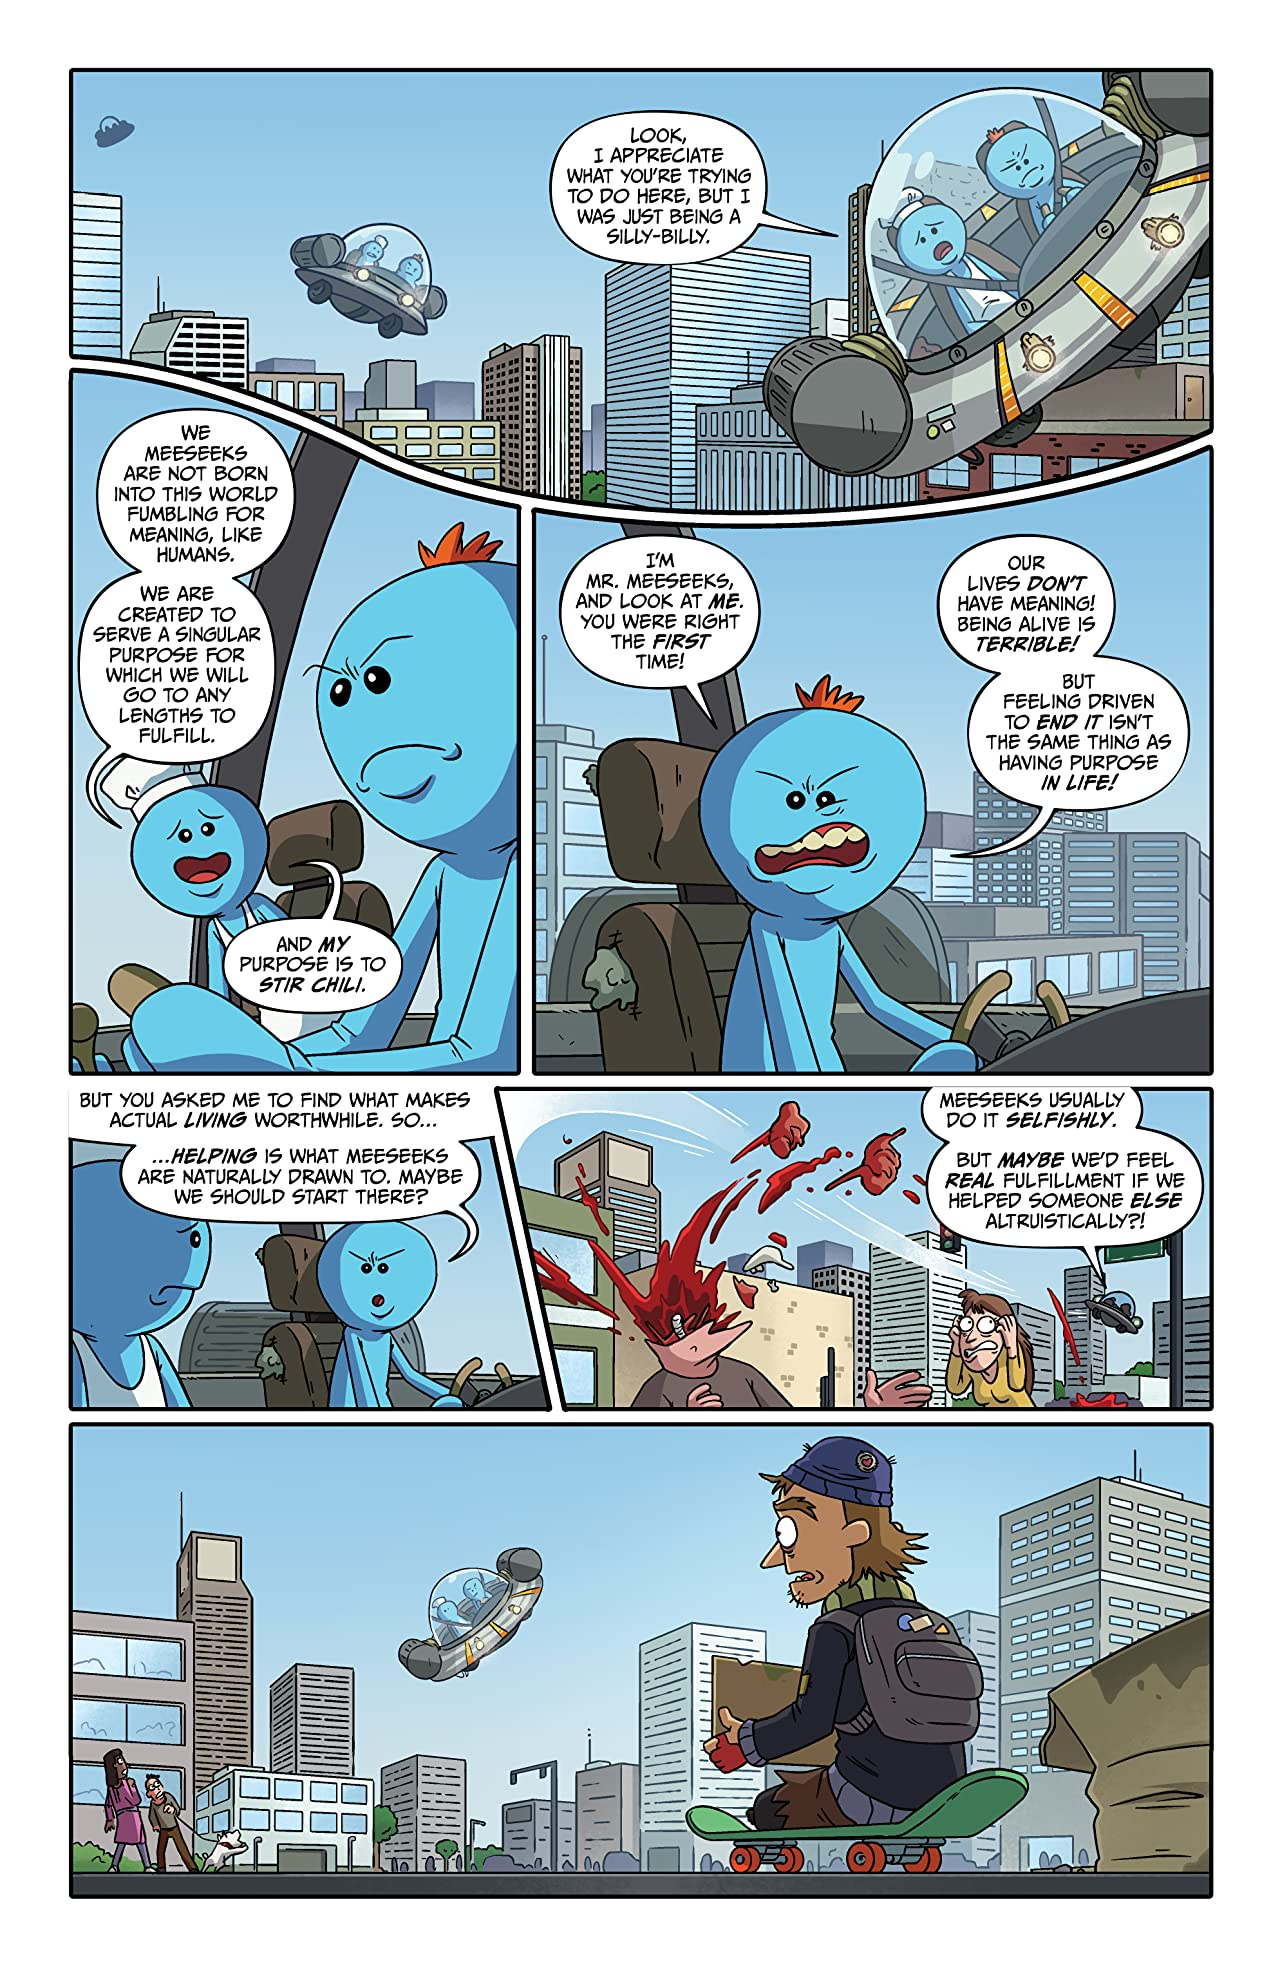 Rick and Morty Presents: Mr. Meeseeks #1